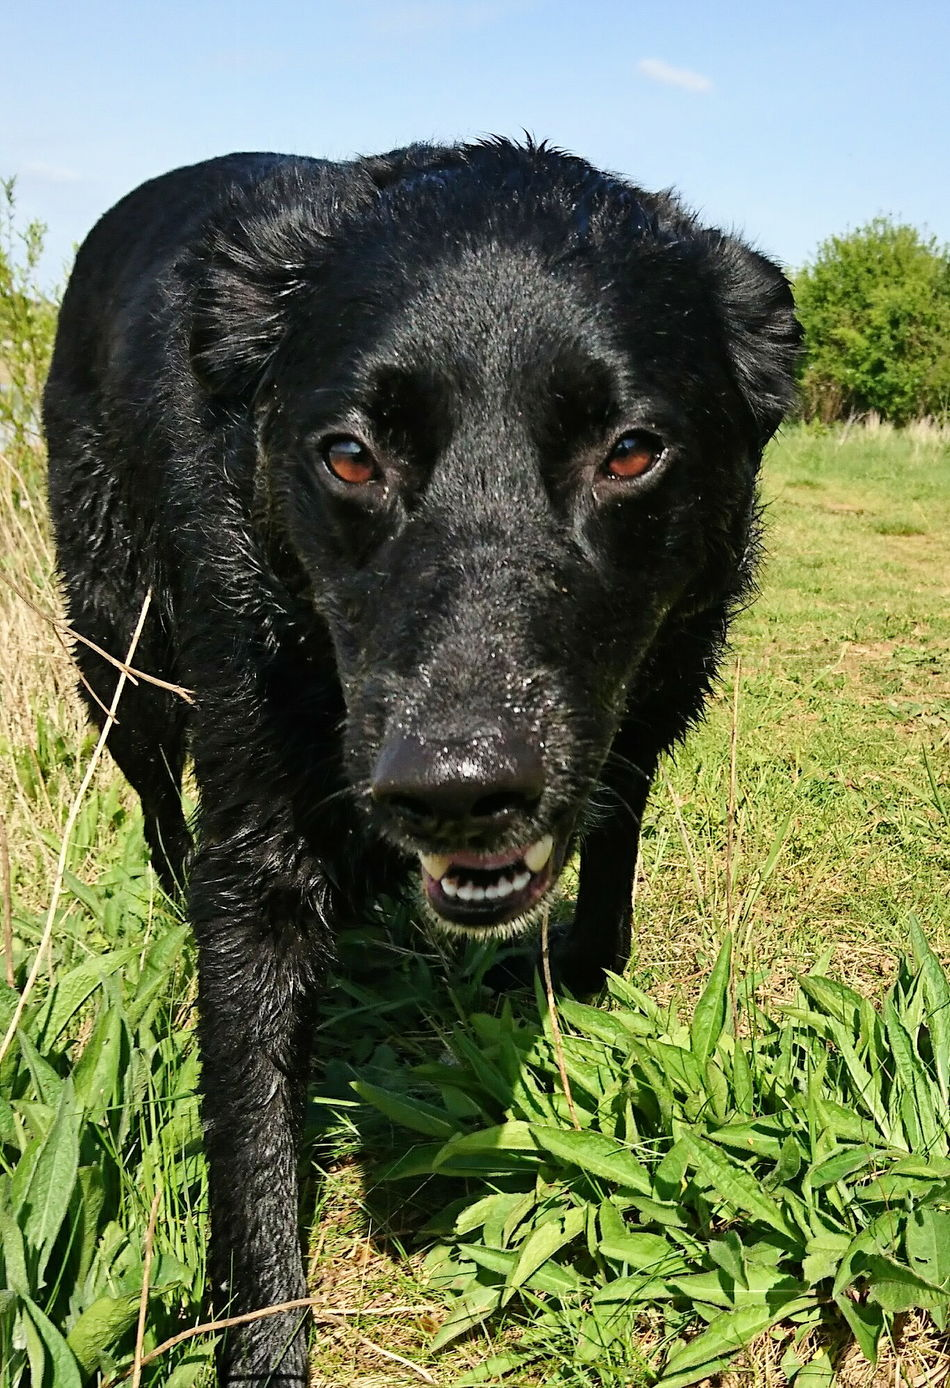 Dog One Animal Looking At Camera Pets Domestic Animals Mammal Animal Themes Black Color Dogsareawesome Dog Photography Dog❤ Dogs_of_instagram Canine Love :) Dogs Of EyeEm Dogslife Dog Love DogLove Dog Walking Outdoors No People